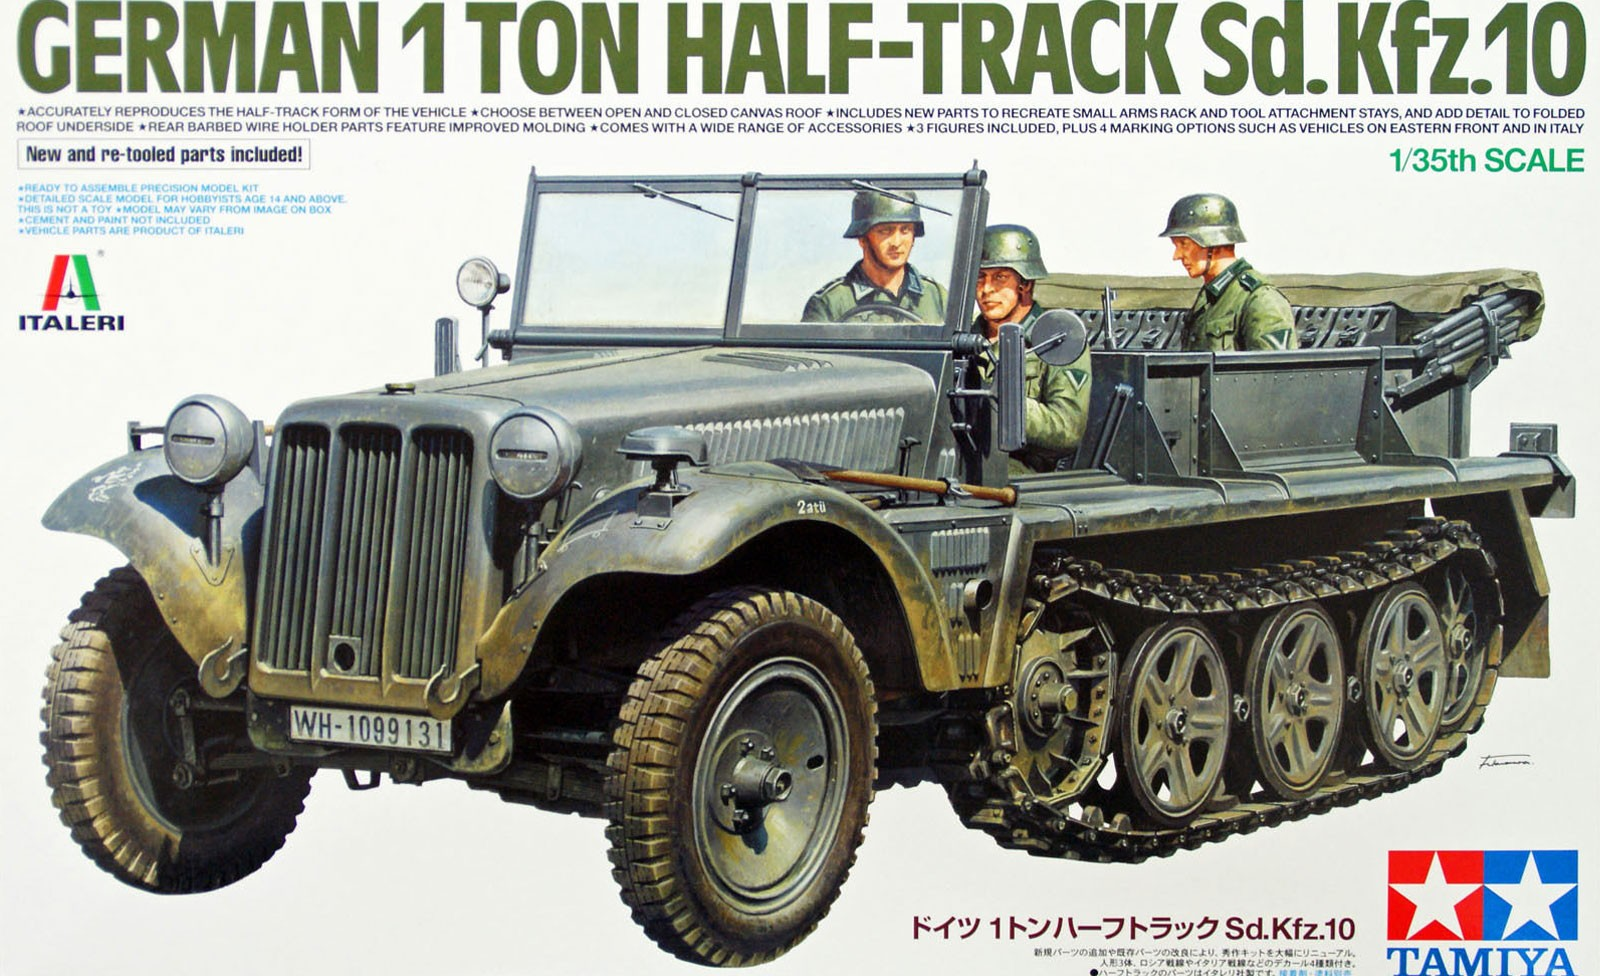 German 1Ton Half-Track Sd.Kfz 10 - Tamiya 37016 - plastic model kit - 1/35 scale